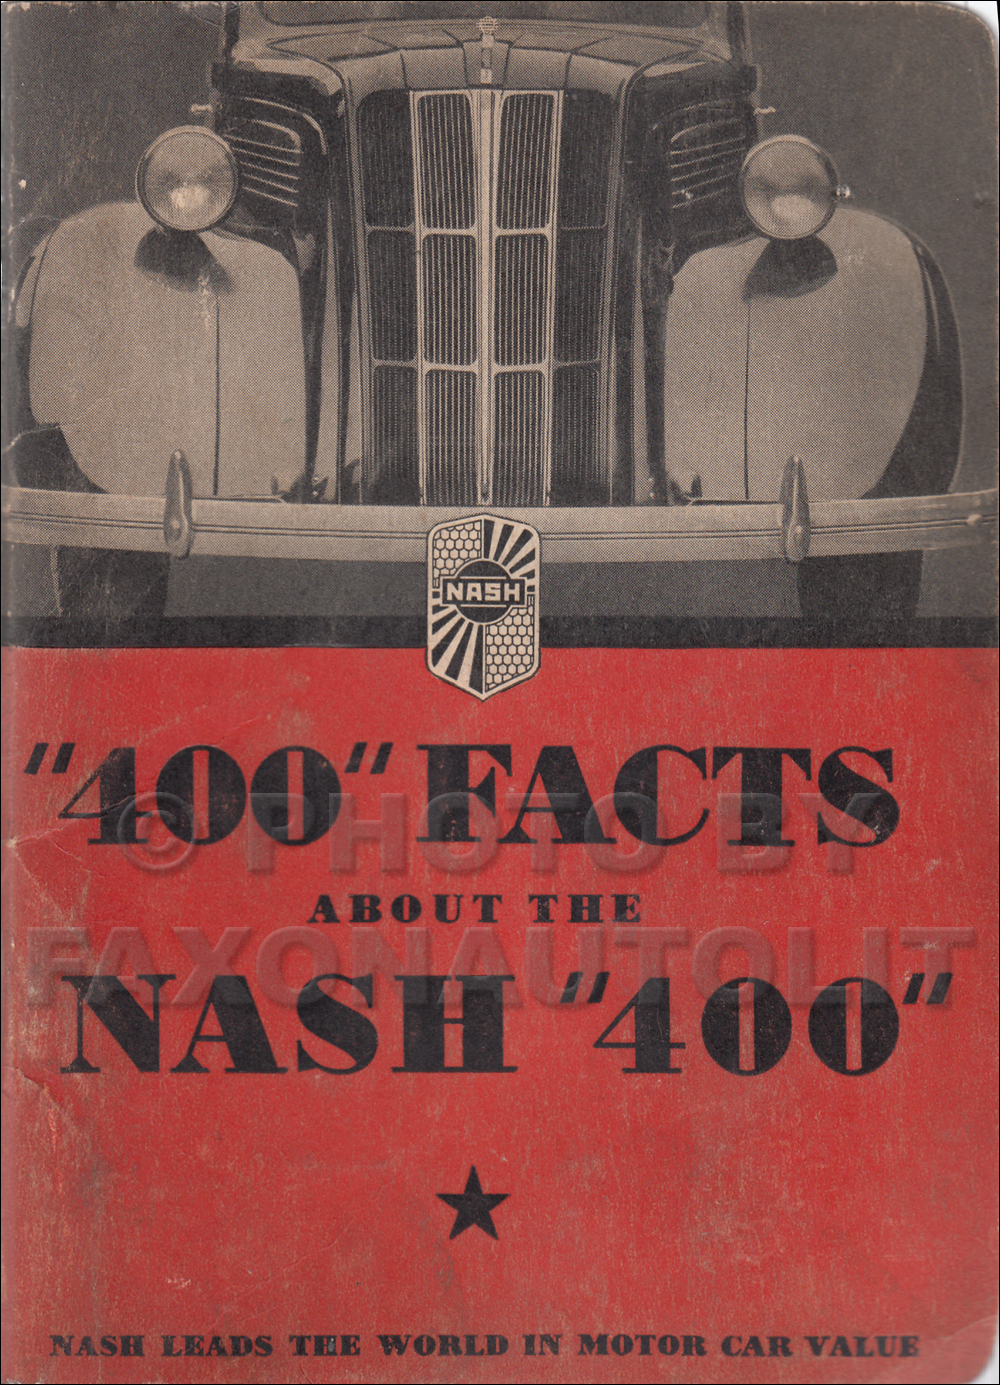 1936 Nash 400 Facts Book Original